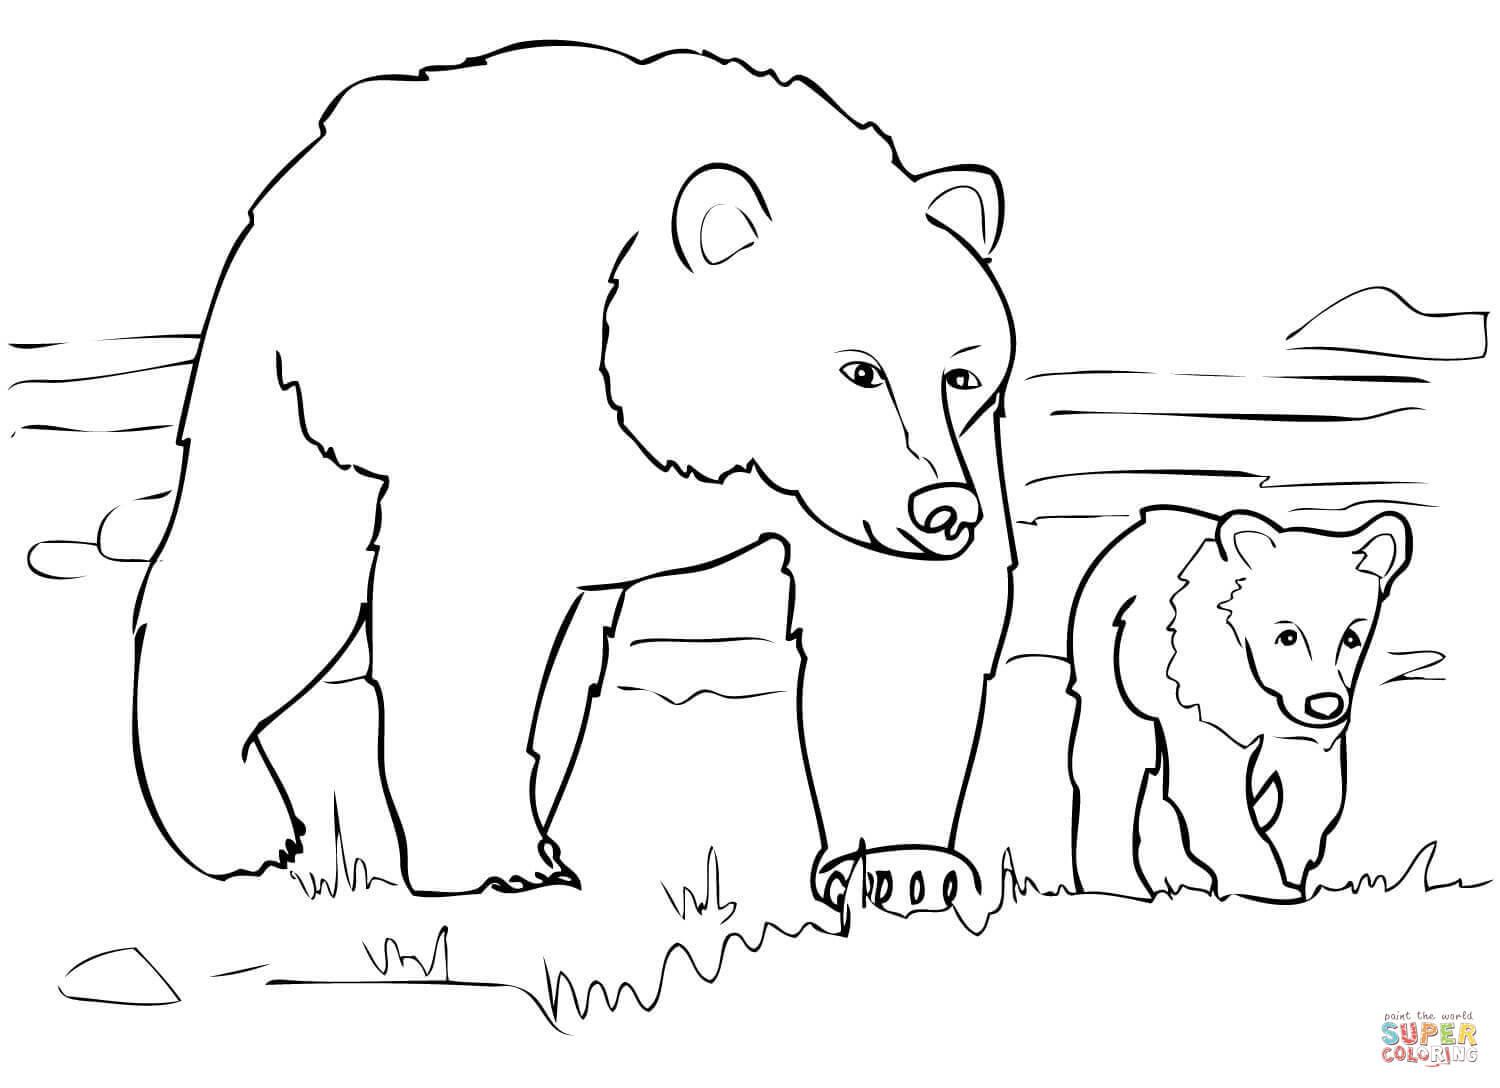 Grizzly Bear Family Coloring Page | Free Printable Coloring Pages - Polar Bear Printable Pictures Free